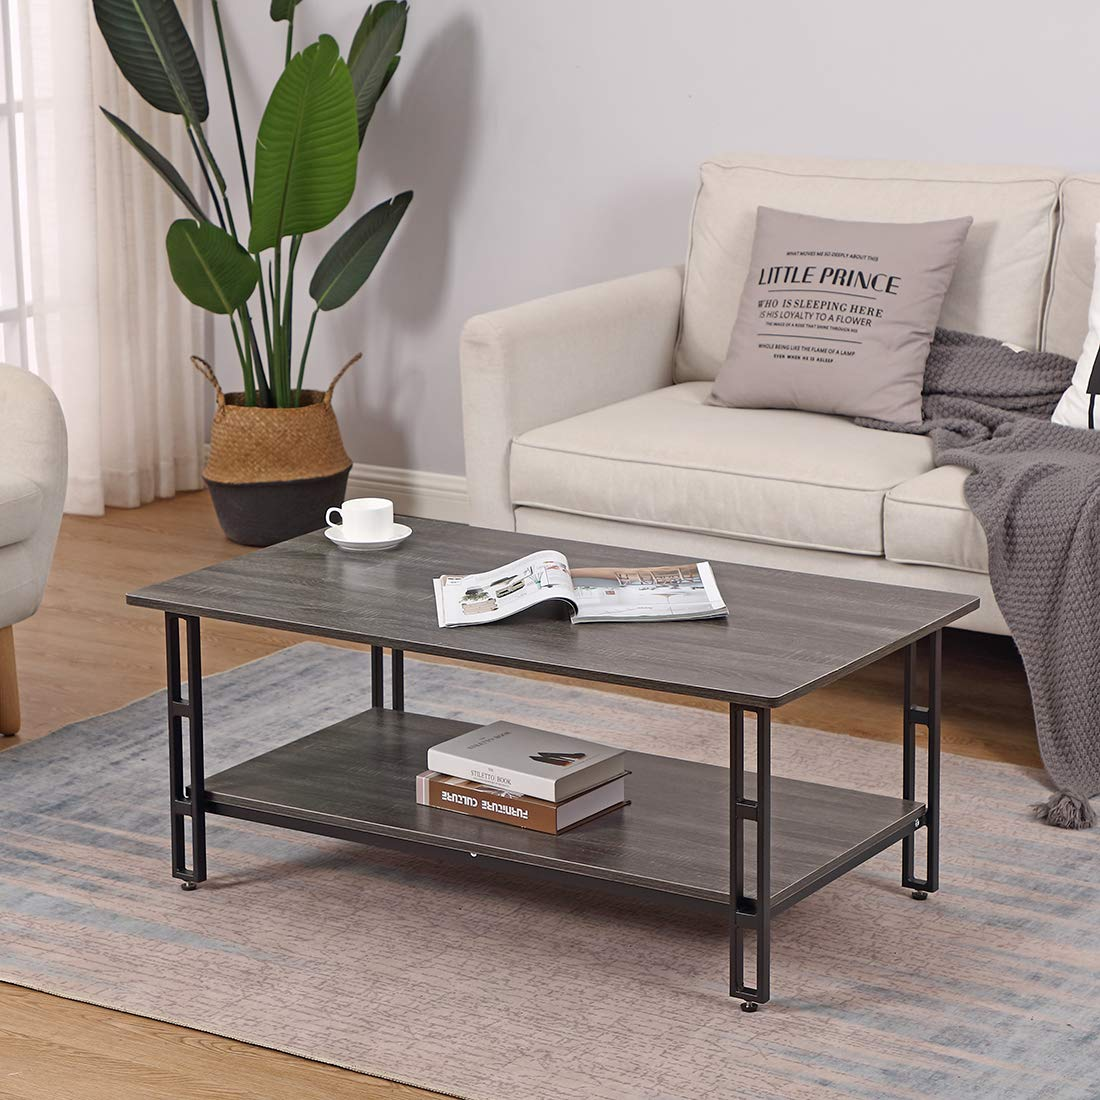 Cocktail Coffee Table Vintage Grey with Storage Shelf - Bizzoelife 42 Inches Industrial Tea Table Rustic for Living Room by Bizzoelife